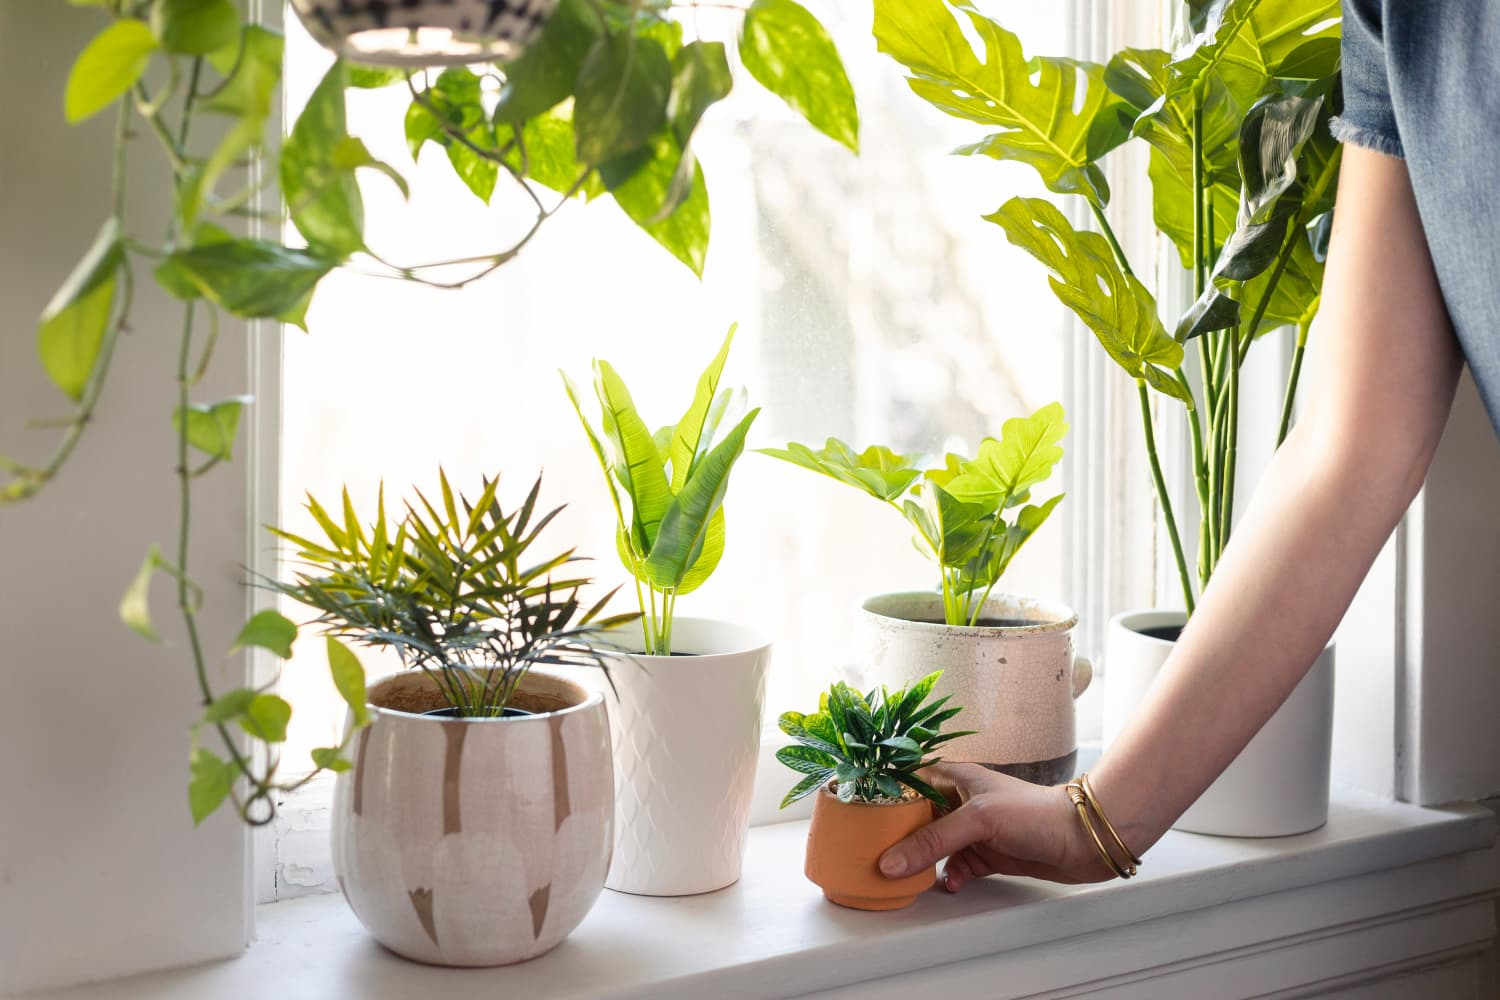 The $1 Medicine Cabinet Staple That Can Help Cure Your Sick Houseplants